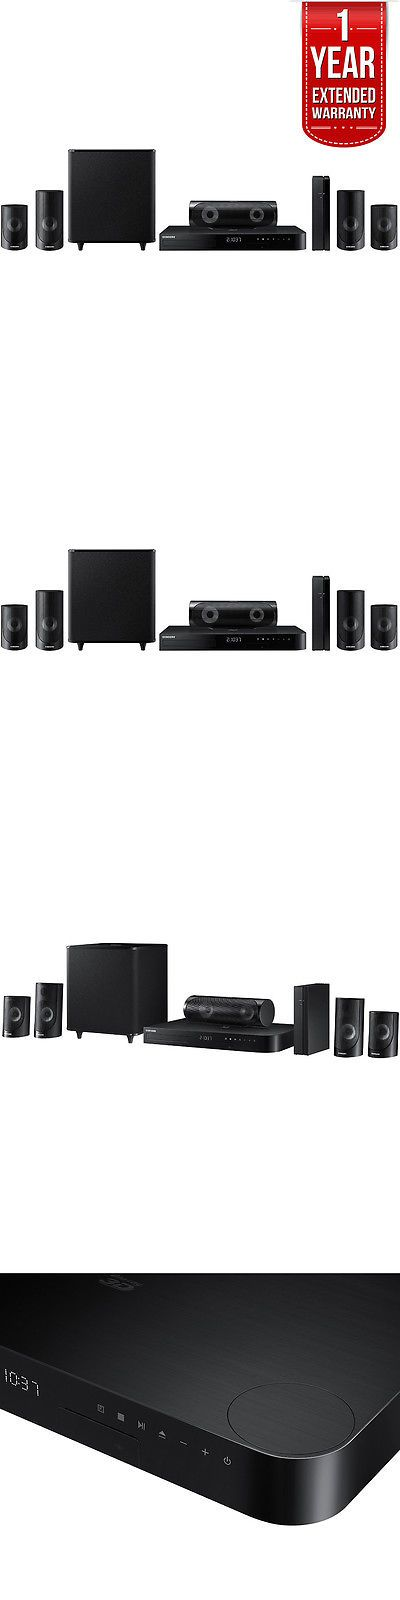 Home Theater Systems: Samsung 5.1Ch 1000W 3D Blu-Ray Home Theater System B.Tooth W Extended Warranty -> BUY IT NOW ONLY: $327.99 on eBay!